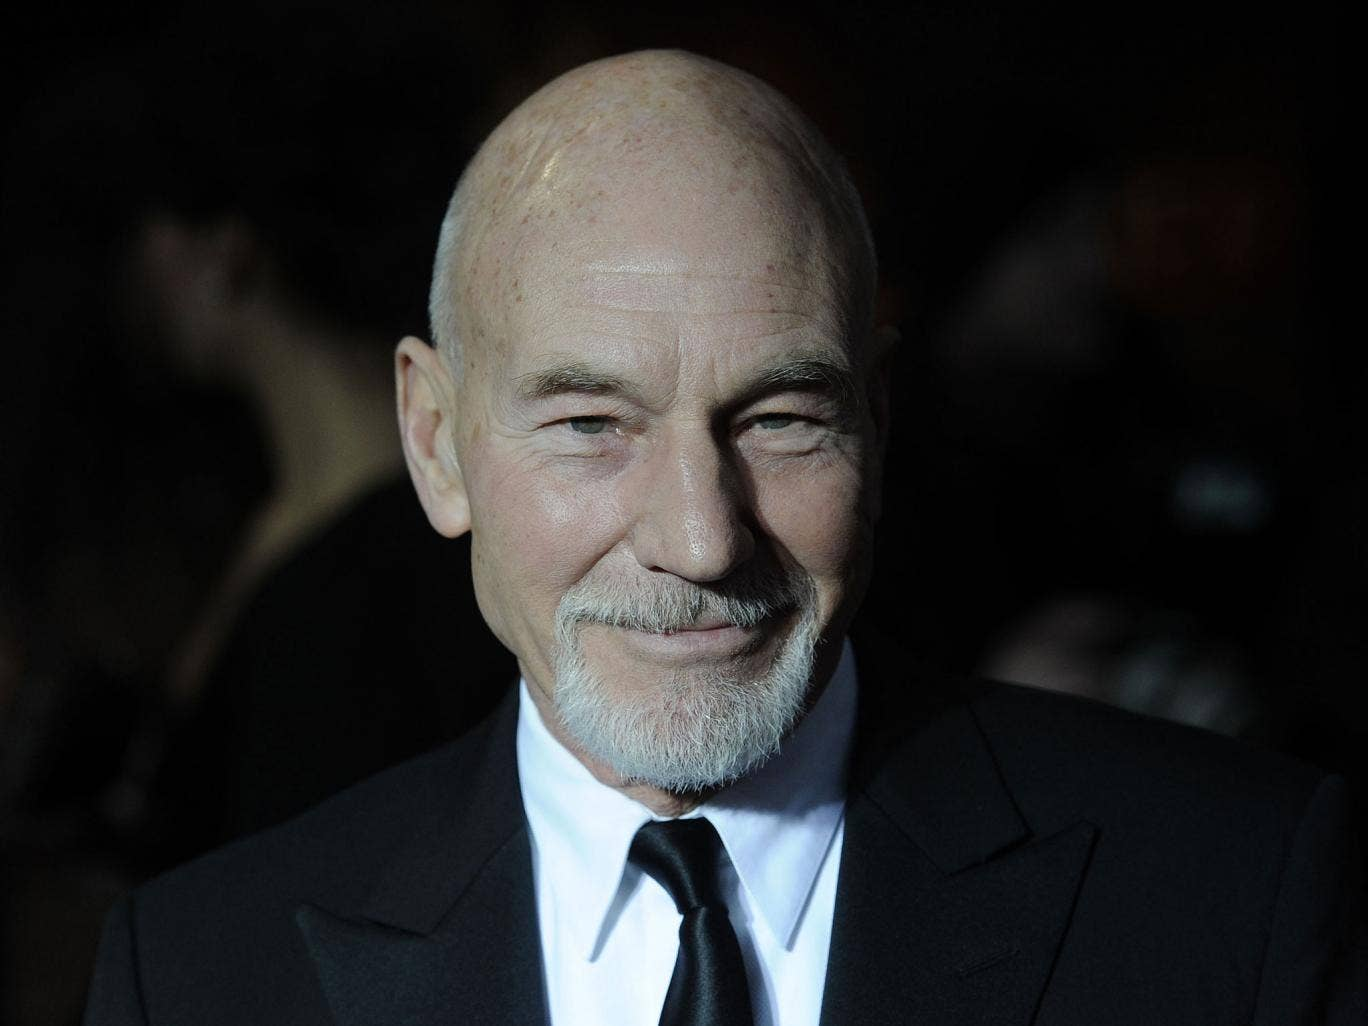 Patrick Stewart has hinted at a Wolverine movie that pairs Professor Xavier with Hugh Jackman's character